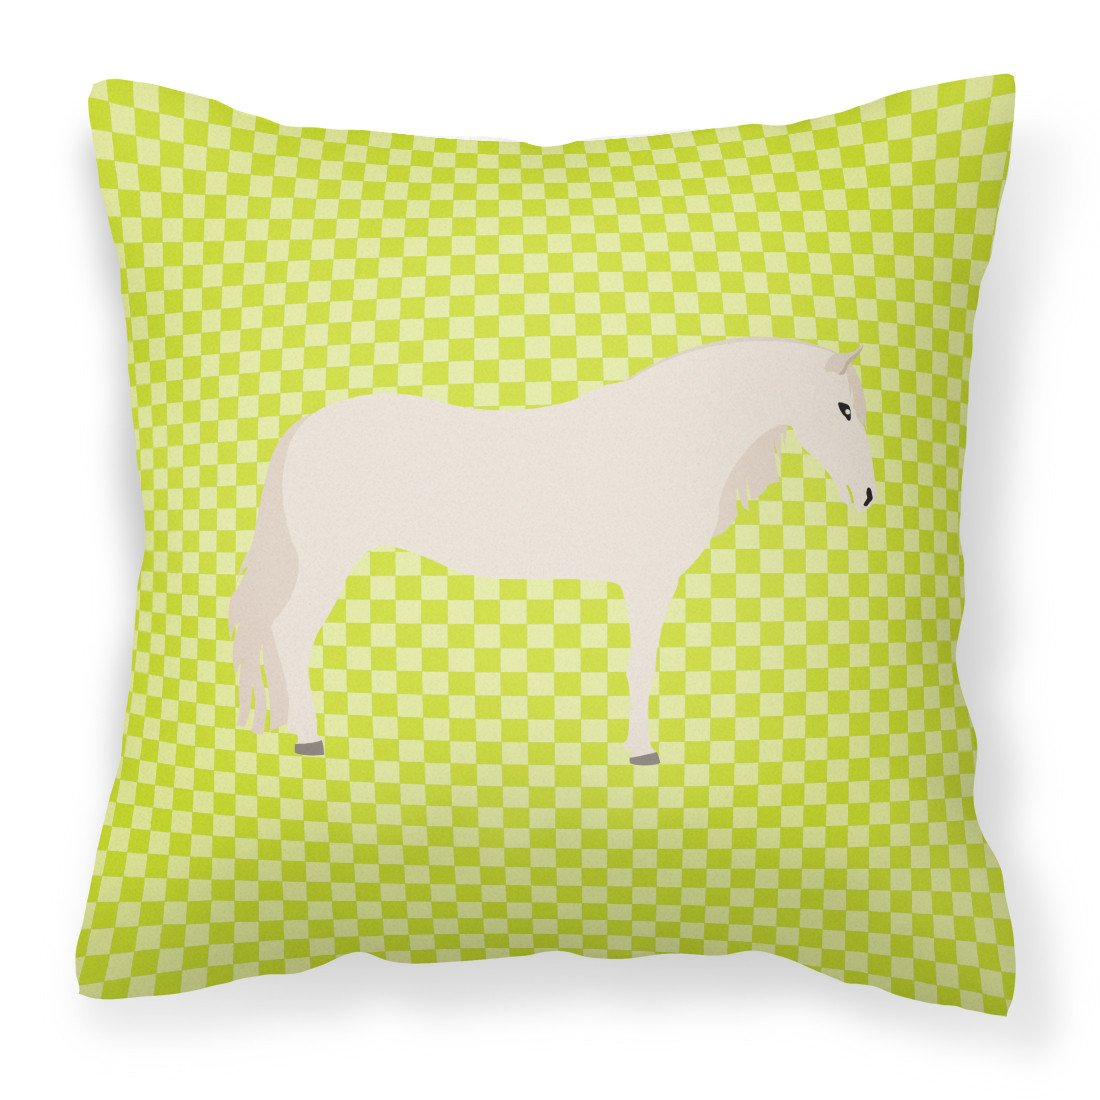 Paso Fino Horse Green Fabric Decorative Pillow BB7731PW1818 by Caroline's Treasures